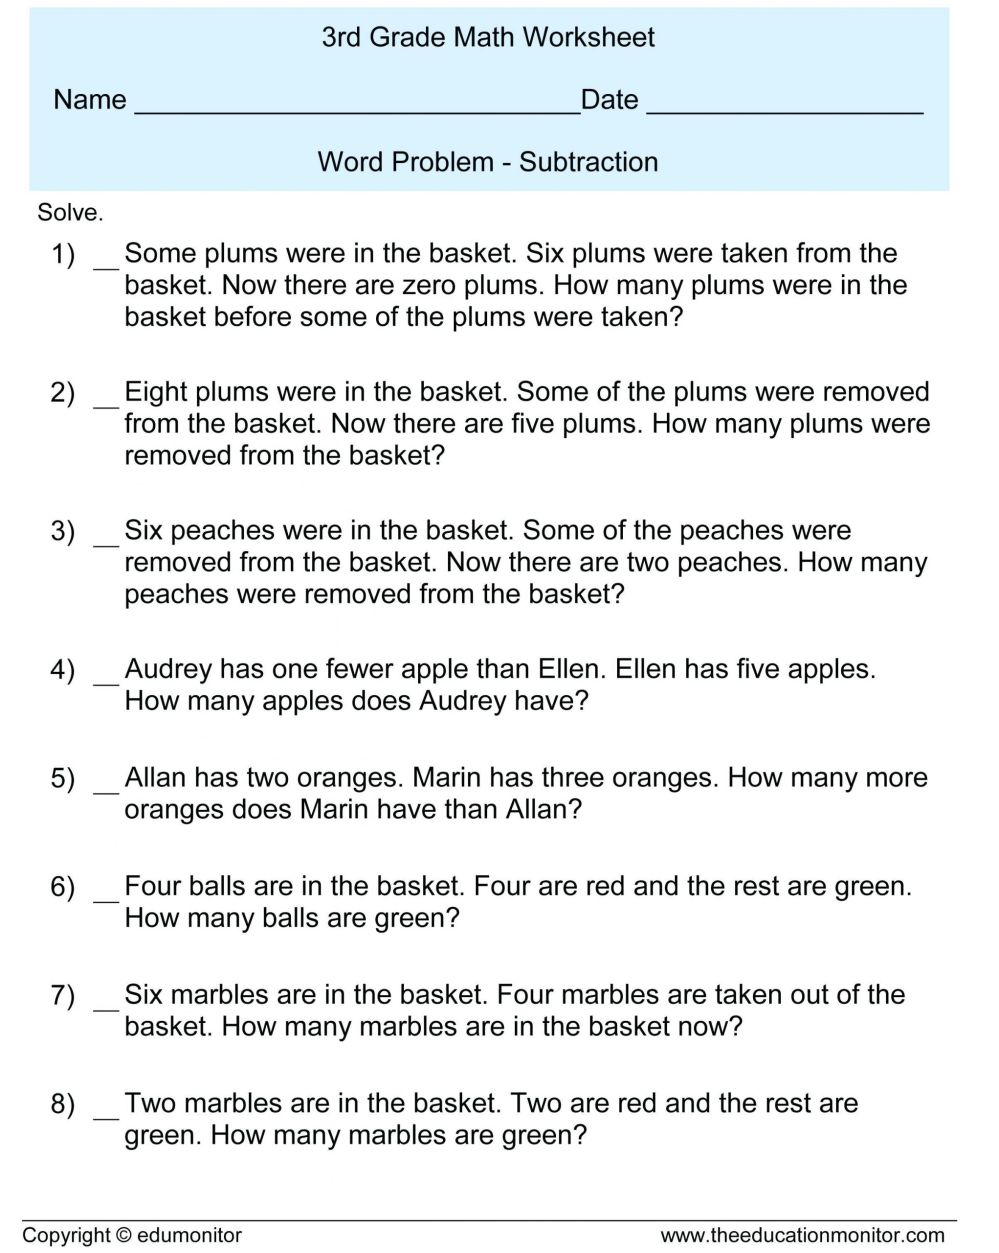 medium resolution of 3 Free Math Worksheets Third Grade 3 Fractions and Decimals Subtracting  Fractions From Mixed Numbers - apocalomegaproductions.com